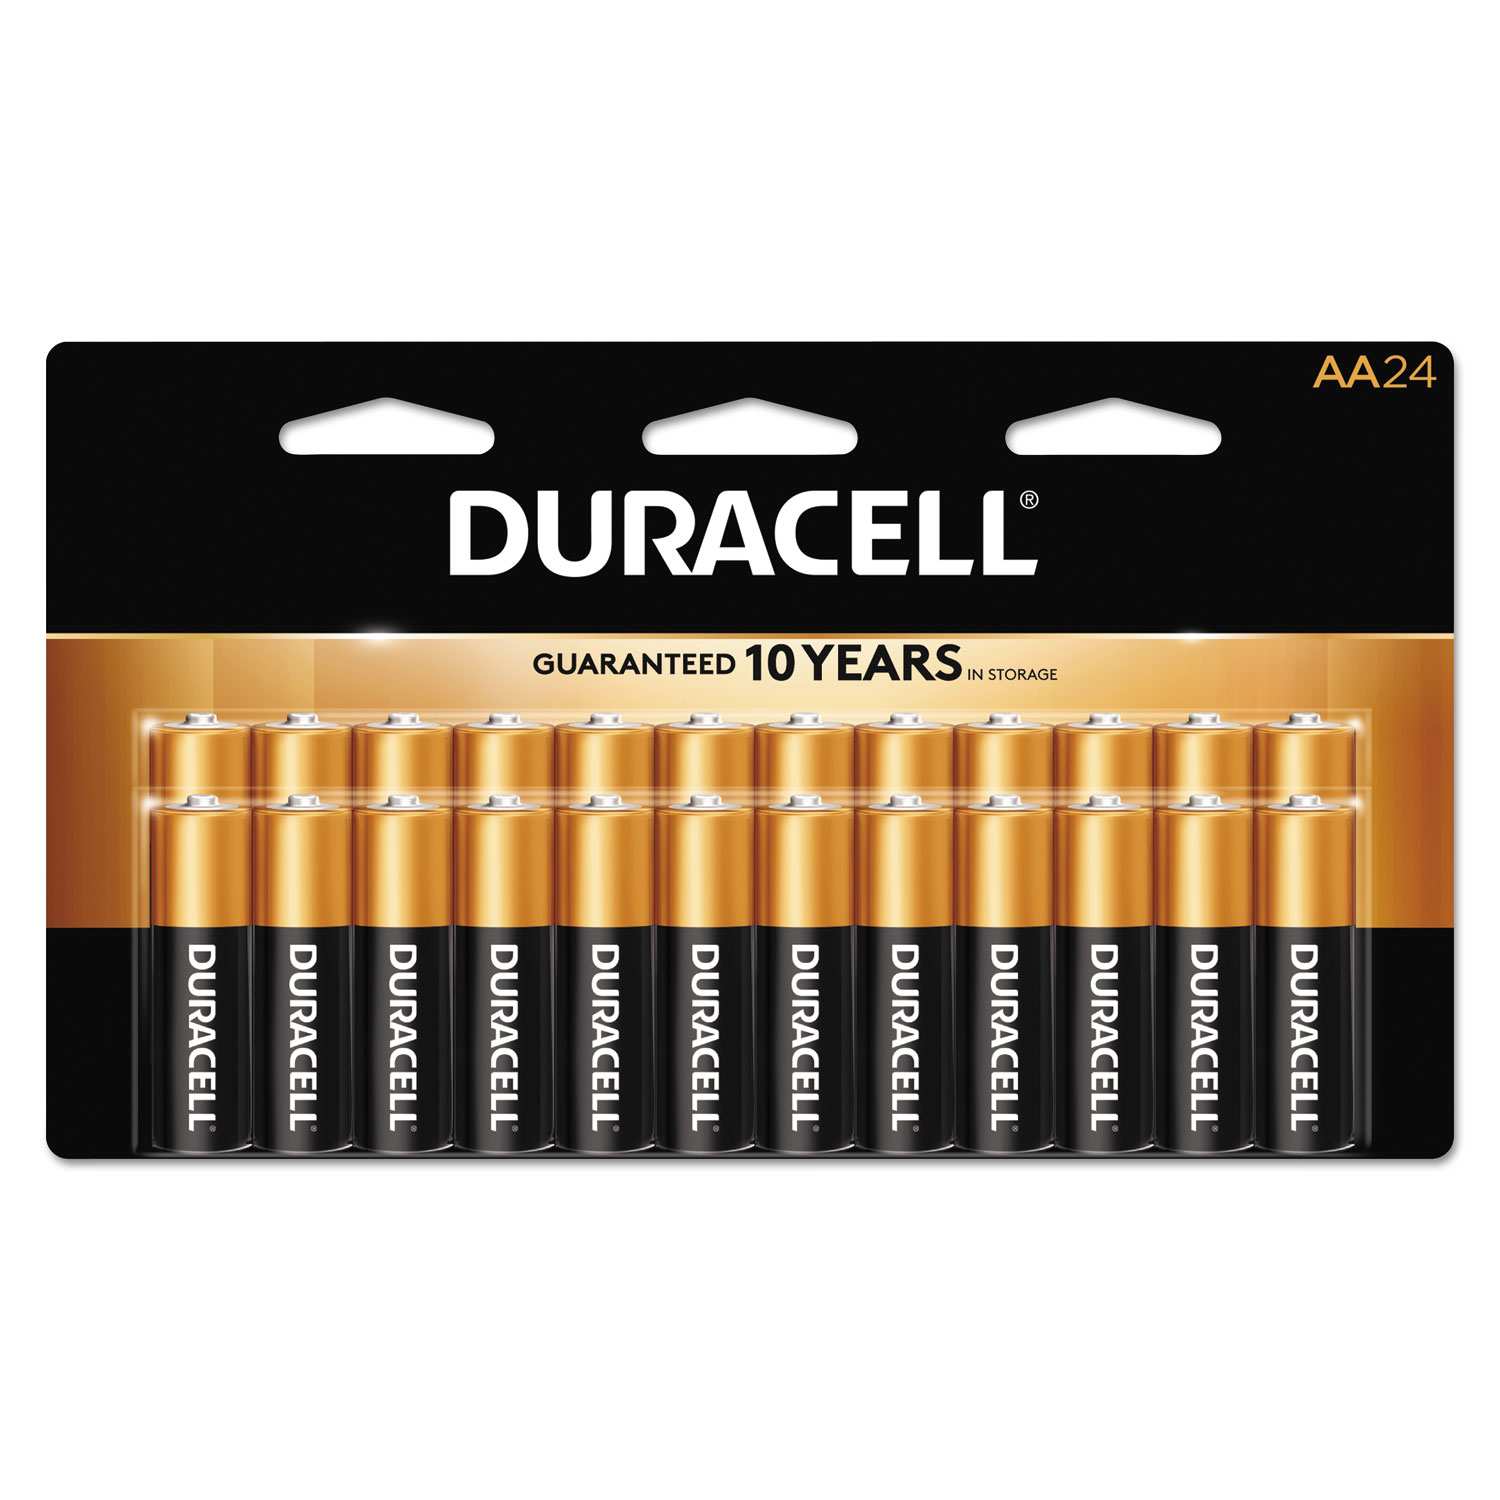 Duracell CopperTop Alkaline Batteries, AAA, 24/BX